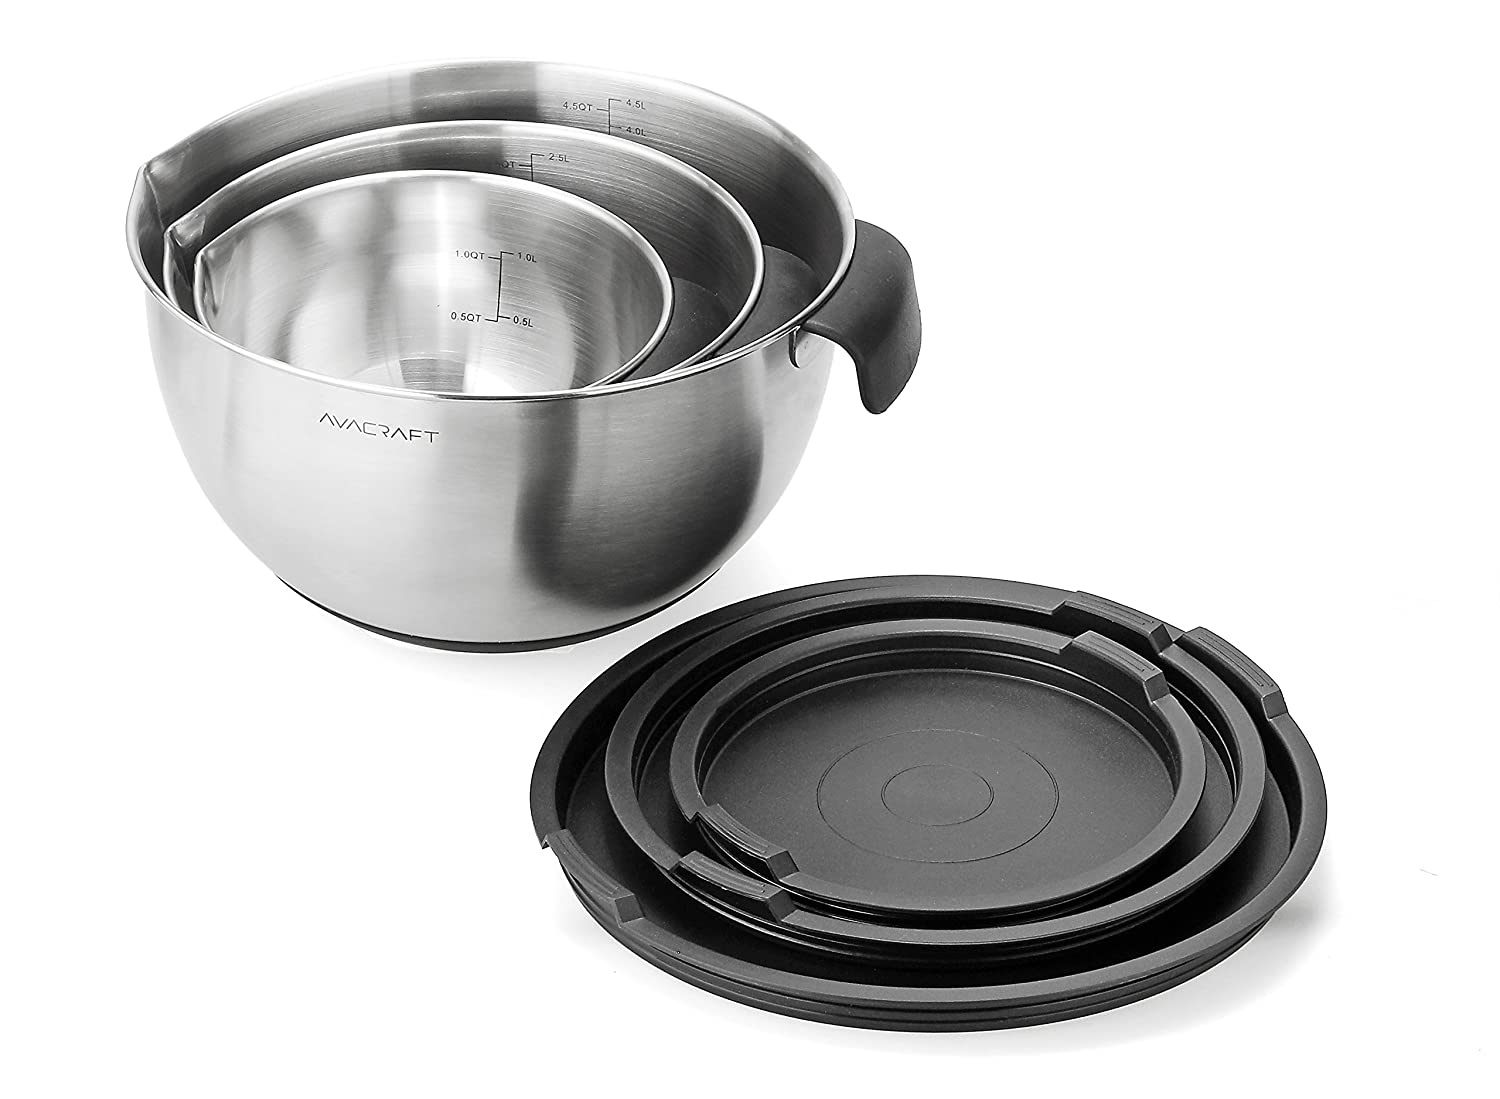 Steel Mixing Bowl set with Lids, Non-Slip Silicone Bottom, Handle, Pour Spouts and Measurement Marks,